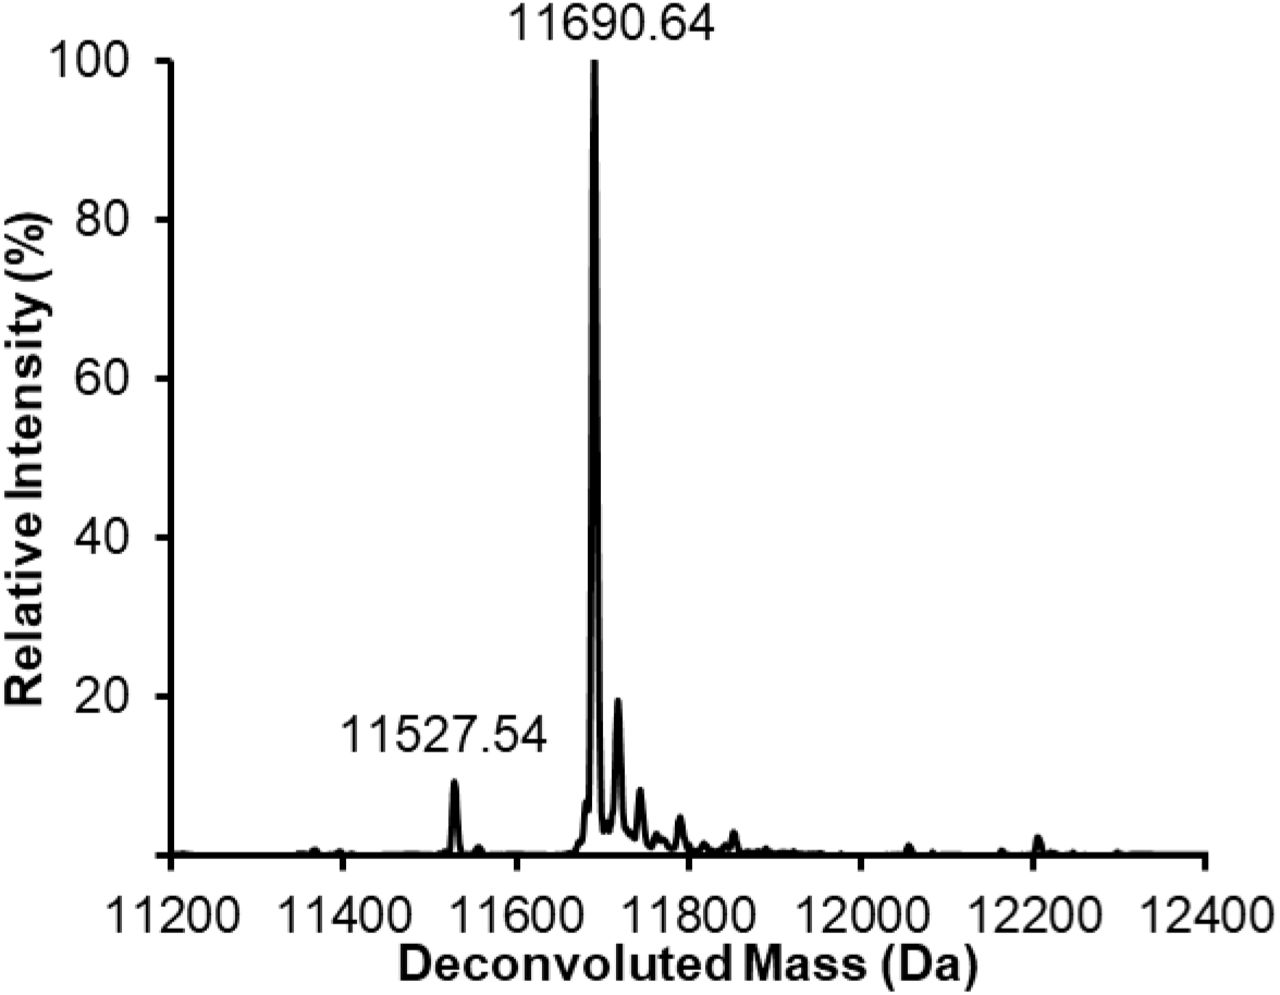 CjCST-I and HsSIAT1 exhibit greater activity when produced in oxidizing conditions. Deconvoluted intact protein MS spectra representative of of n=2 IVG reaction products containing 10 µM Im7-6, 0.4 µM ApNGT, 2 µM NmLgtB, 2.5 mM of UDP-Glc, UDP-Gal, and CMP-Sia as well as CjCST-I or HsSIAT1 made in CFPS conducted under oxidizing conditions, reducing conditions with supplemented the E. coli disulfide bond isomerase (DsbC), or standard reducing conditions (see Methods ). CFPS conditions are known to create a protein synthesis environment conducive to disulfide bond formation as previously described 24 . Lysates enriched with sialyltranferases by CFPS were added in equal volumes. Therefore, reducing reaction conditions contained 1.9 µM of CjCST-I or 3.8 µM of HsSIAT1 while oxidizing reaction conditions reactions contained 1.3 µM of CjCST-I and 0.7 µM of HsSIAT1 (detailed CFPS yield information shown in Supplementary Fig. 2 ). Aside from CFPS synthesis conditions for the CjCST-I and HsSIAT1, IVG reactions were performed identically without ensuring an oxidizing environment for glycosylation. Im7-6, ApNGT, and NmLgtB were produced with standard CFPS reaction conditions. Relative glycosylation efficiencies indicate that the oxidizing CFPS environment of CFPS allows for greater enzyme activities per unit of CFPS reaction volume and per µM of enzyme. This observation makes sense for HsSIAT1 which is normally active in the oxidizing environment of the human golgi and is known to contain disulfide bonds. Interestingly, an oxidizing synthesis environment also seems to benefit the activity of CjCST-I which does not contain disulfide bonds. However, the increased activity of CjCST-I cannot be explained by the general chaperone activity of DsbC.